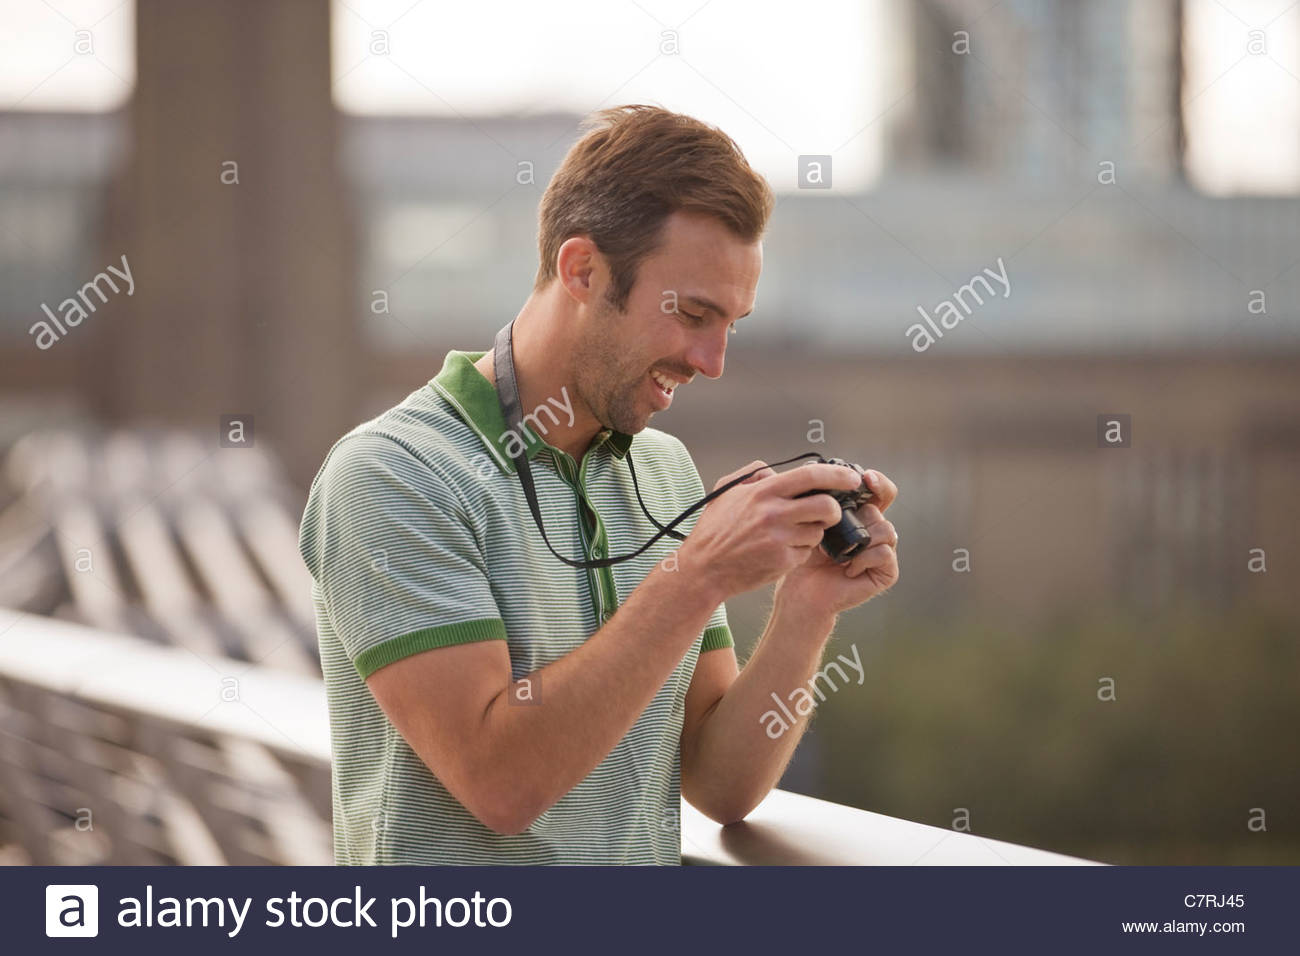 A mid-adult man looking at his photographs on his camera - Stock Image